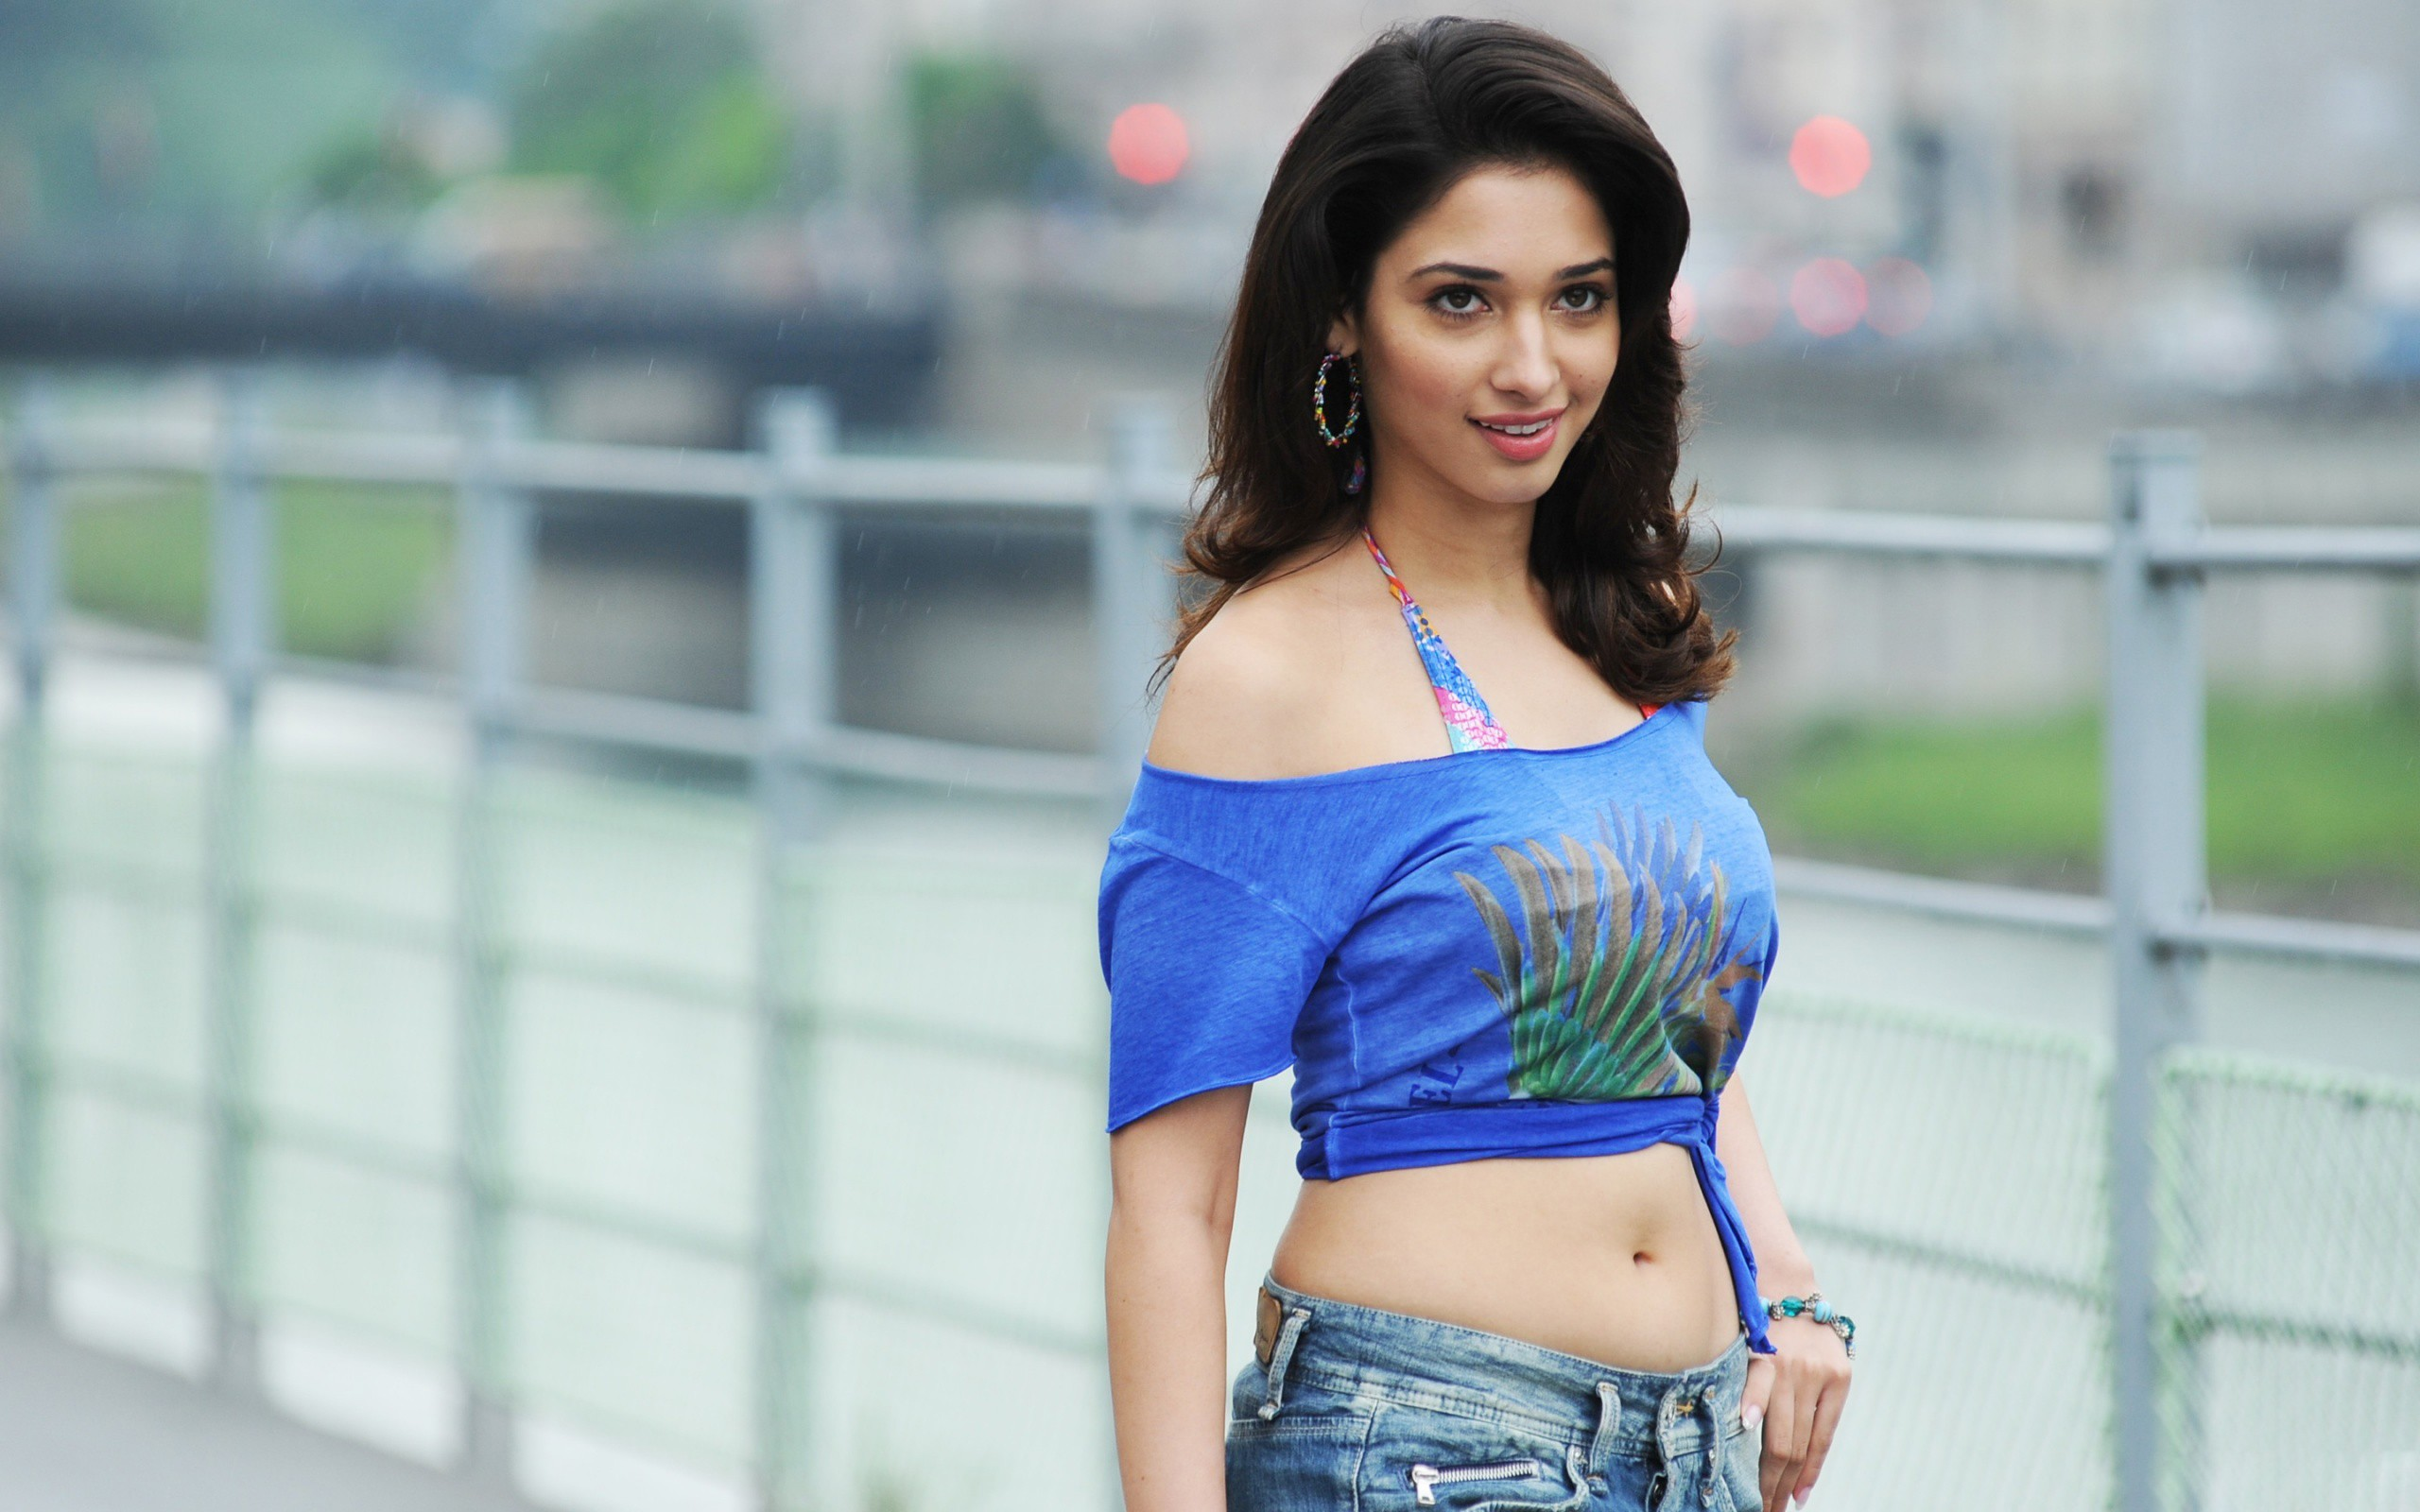 Images of Sunaina Wallpapers Images - #rock-cafe